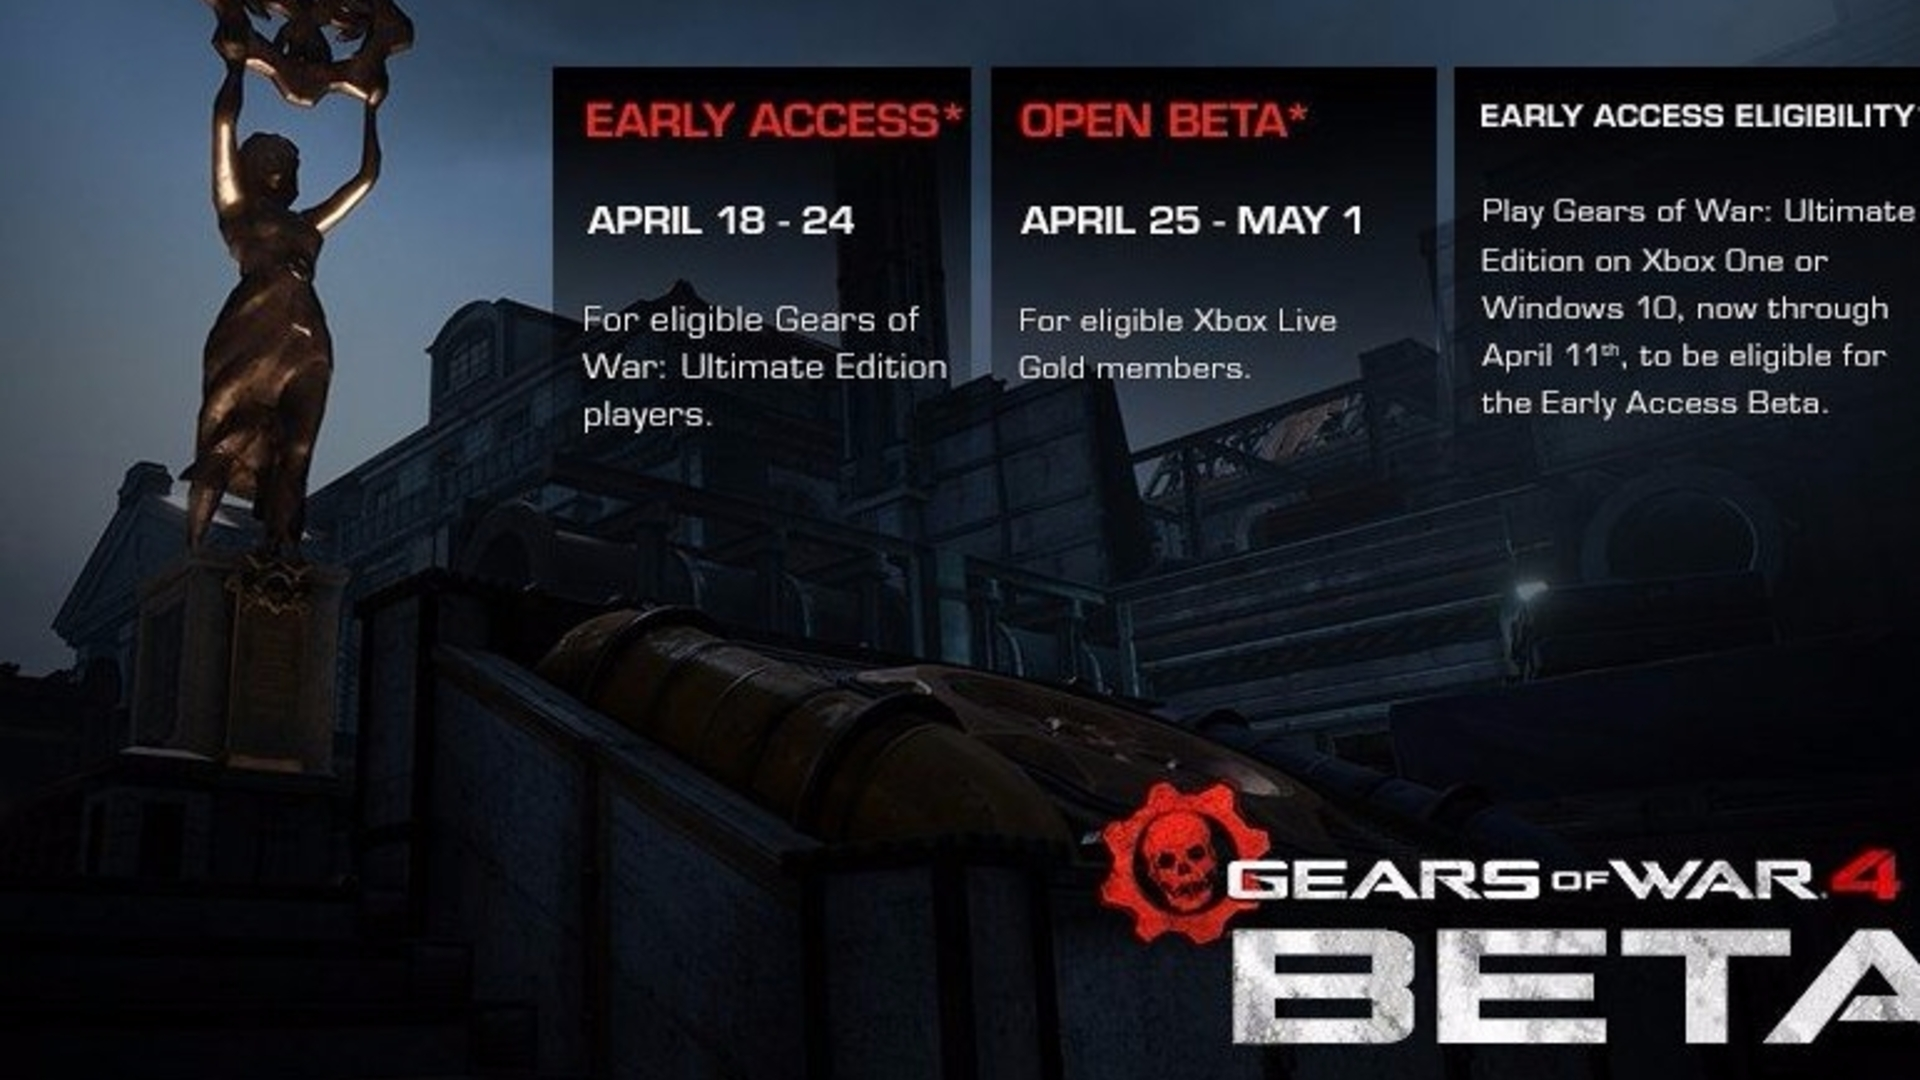 Fecha para la beta multijugador de Gears of War 4